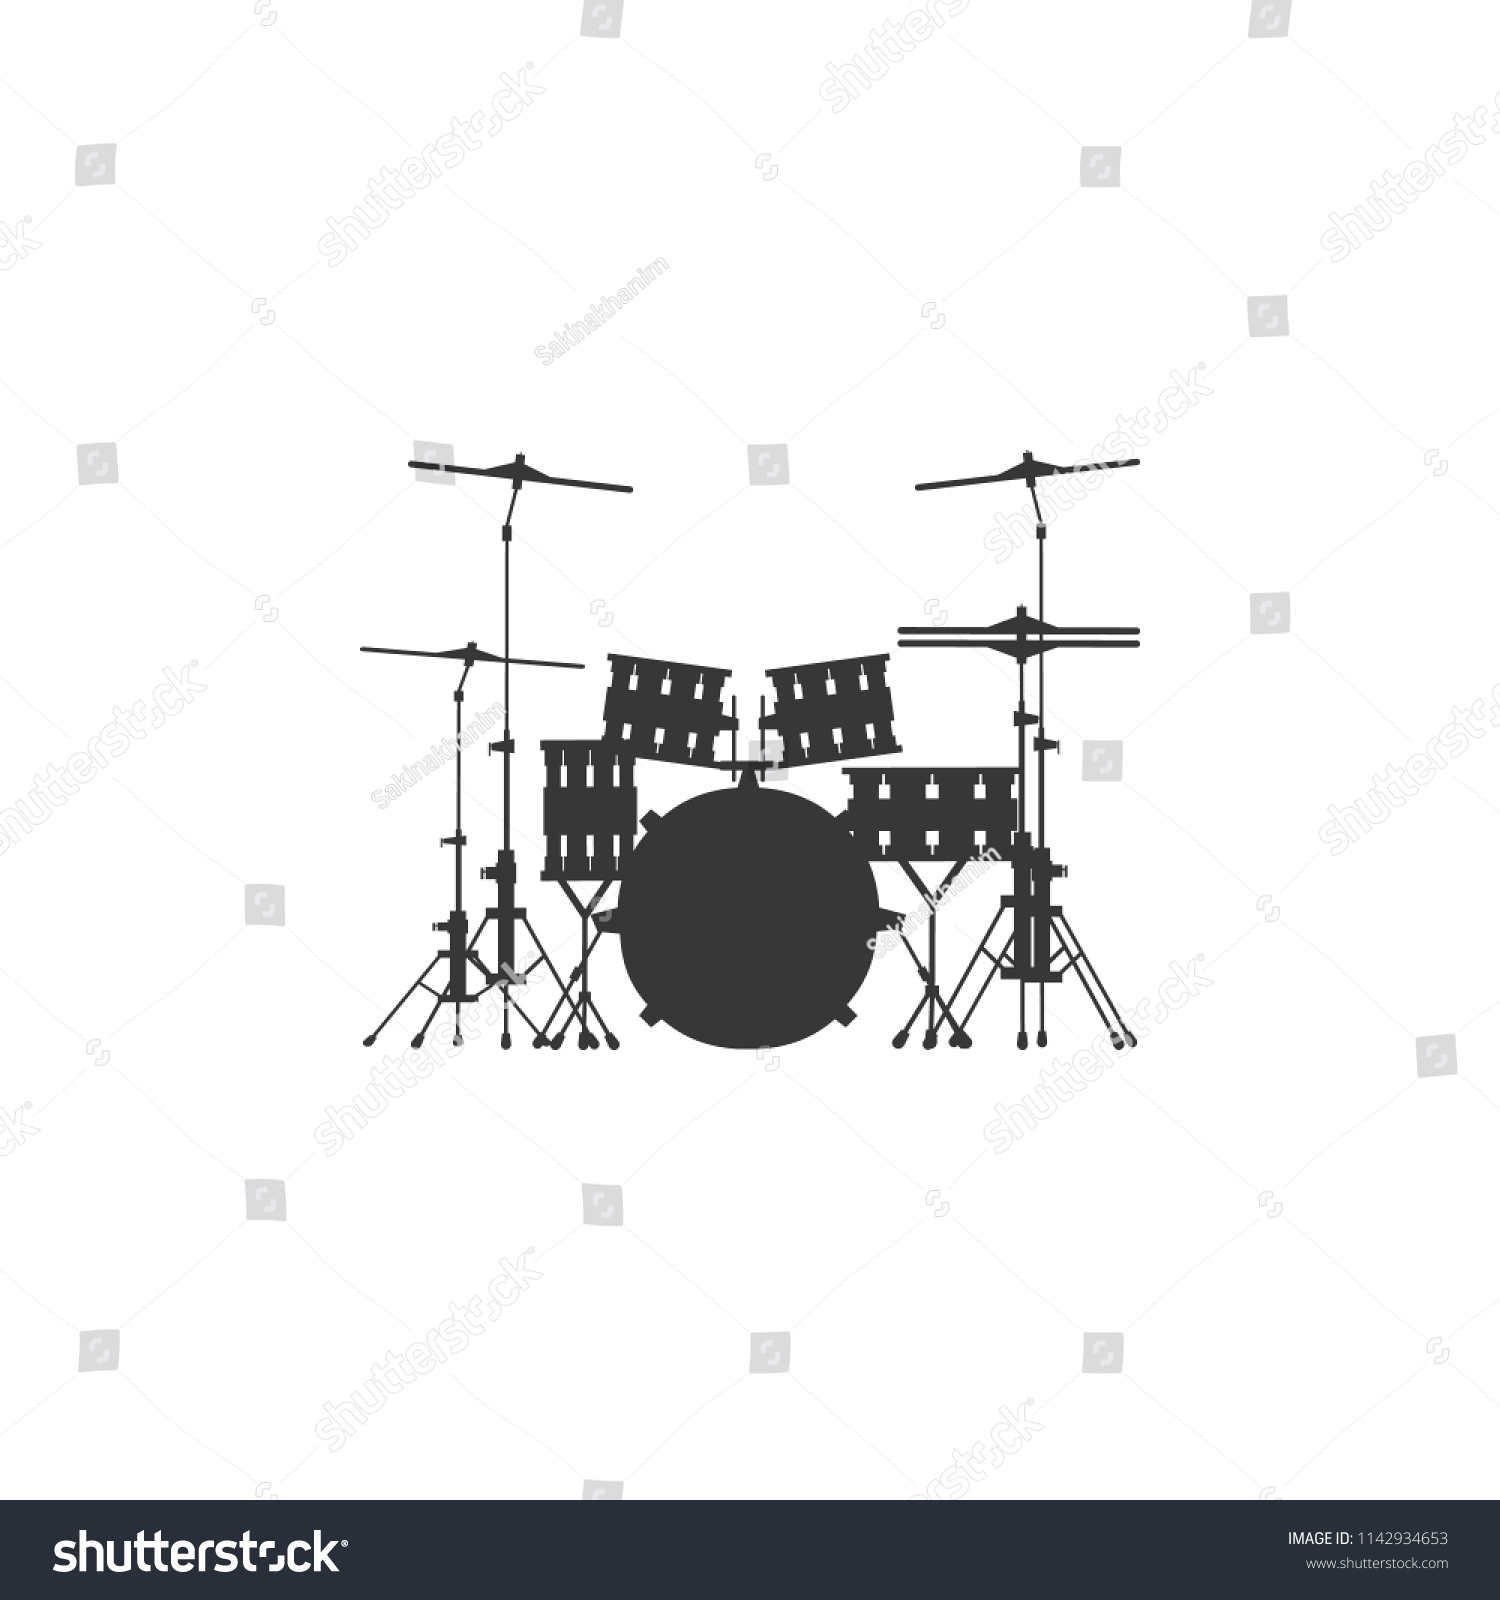 hight resolution of drum set icon on gray background round shadow